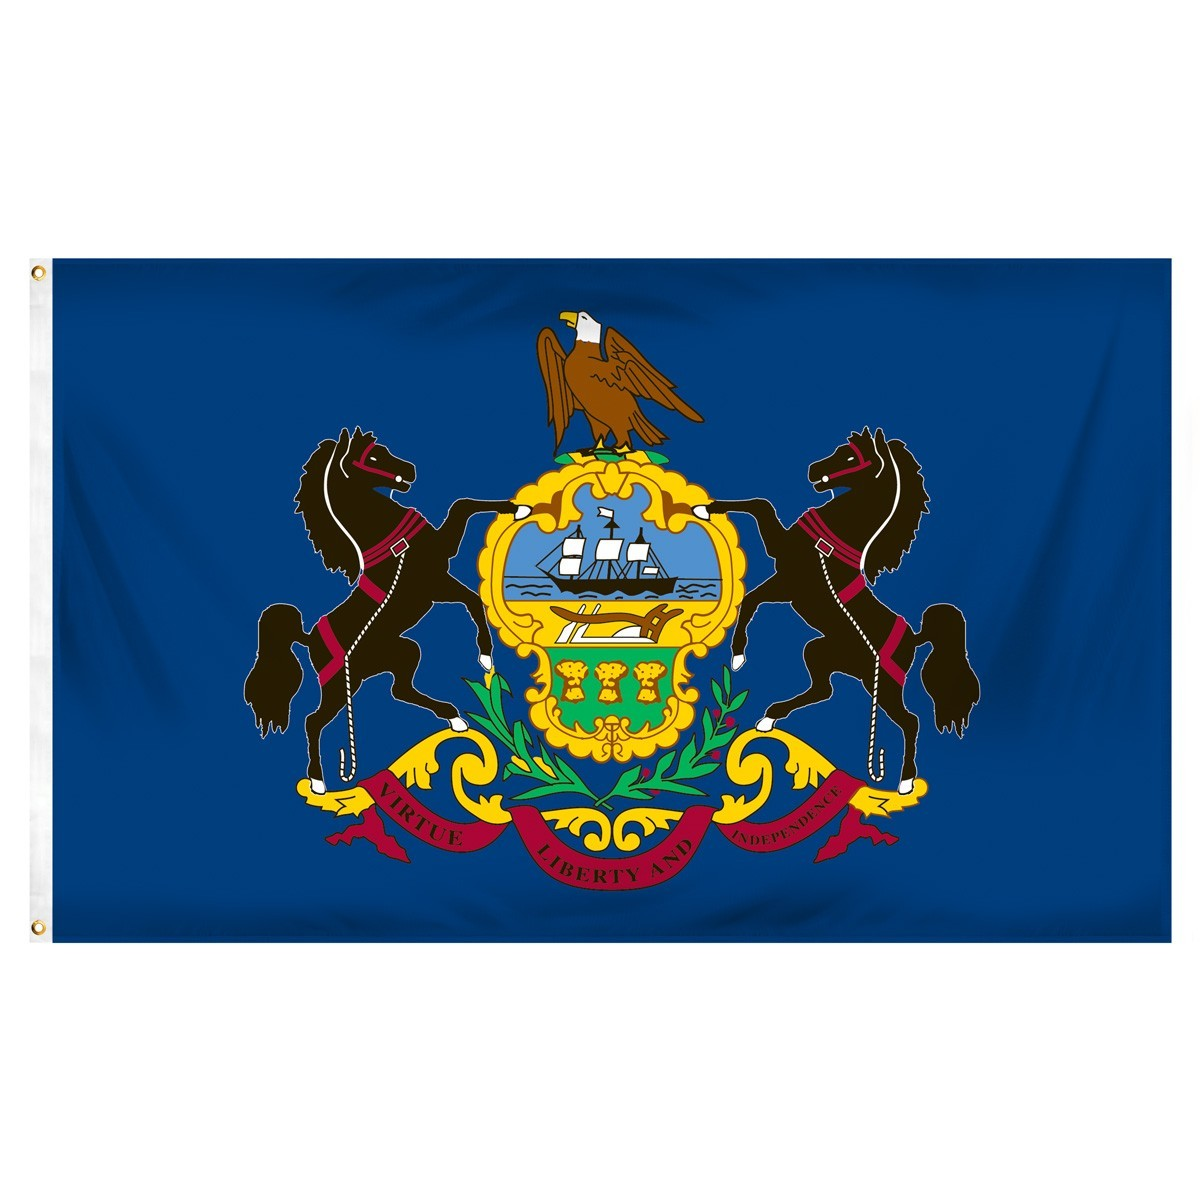 Pennsylvania state flag for sale